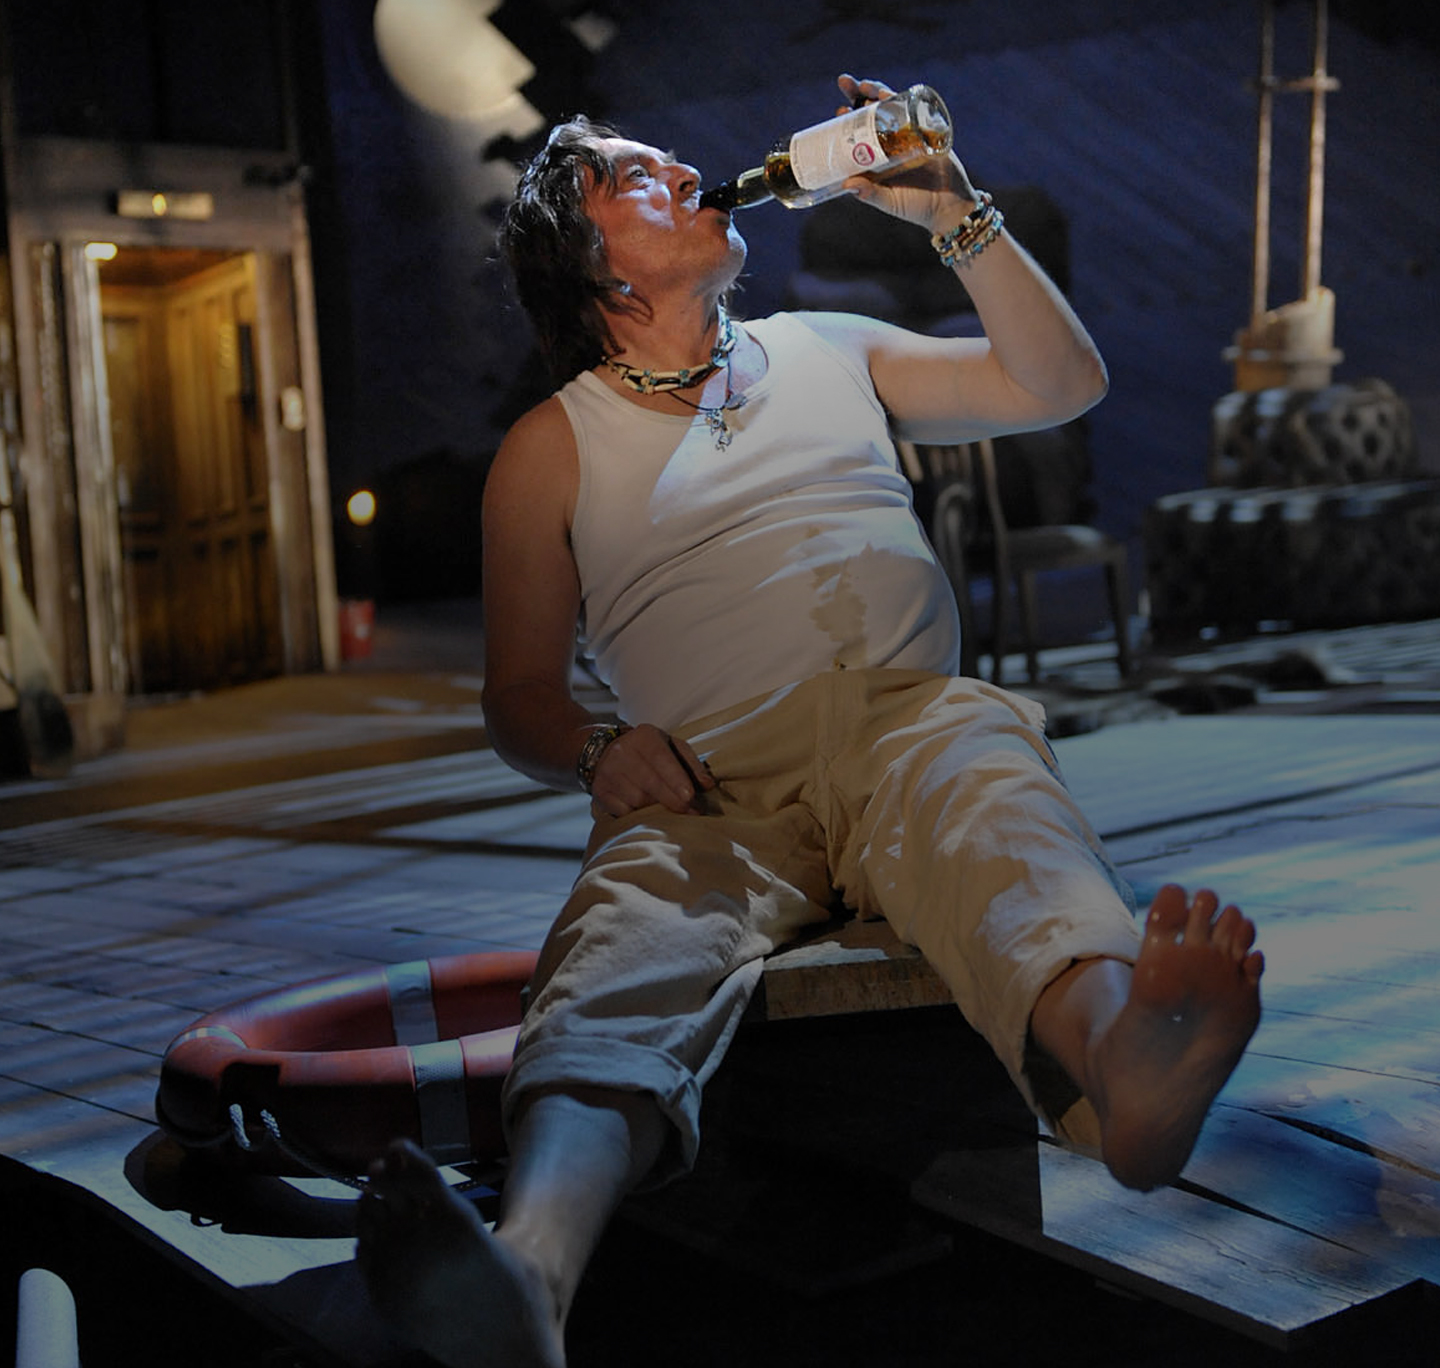 Man sits on stage drinking alcohol